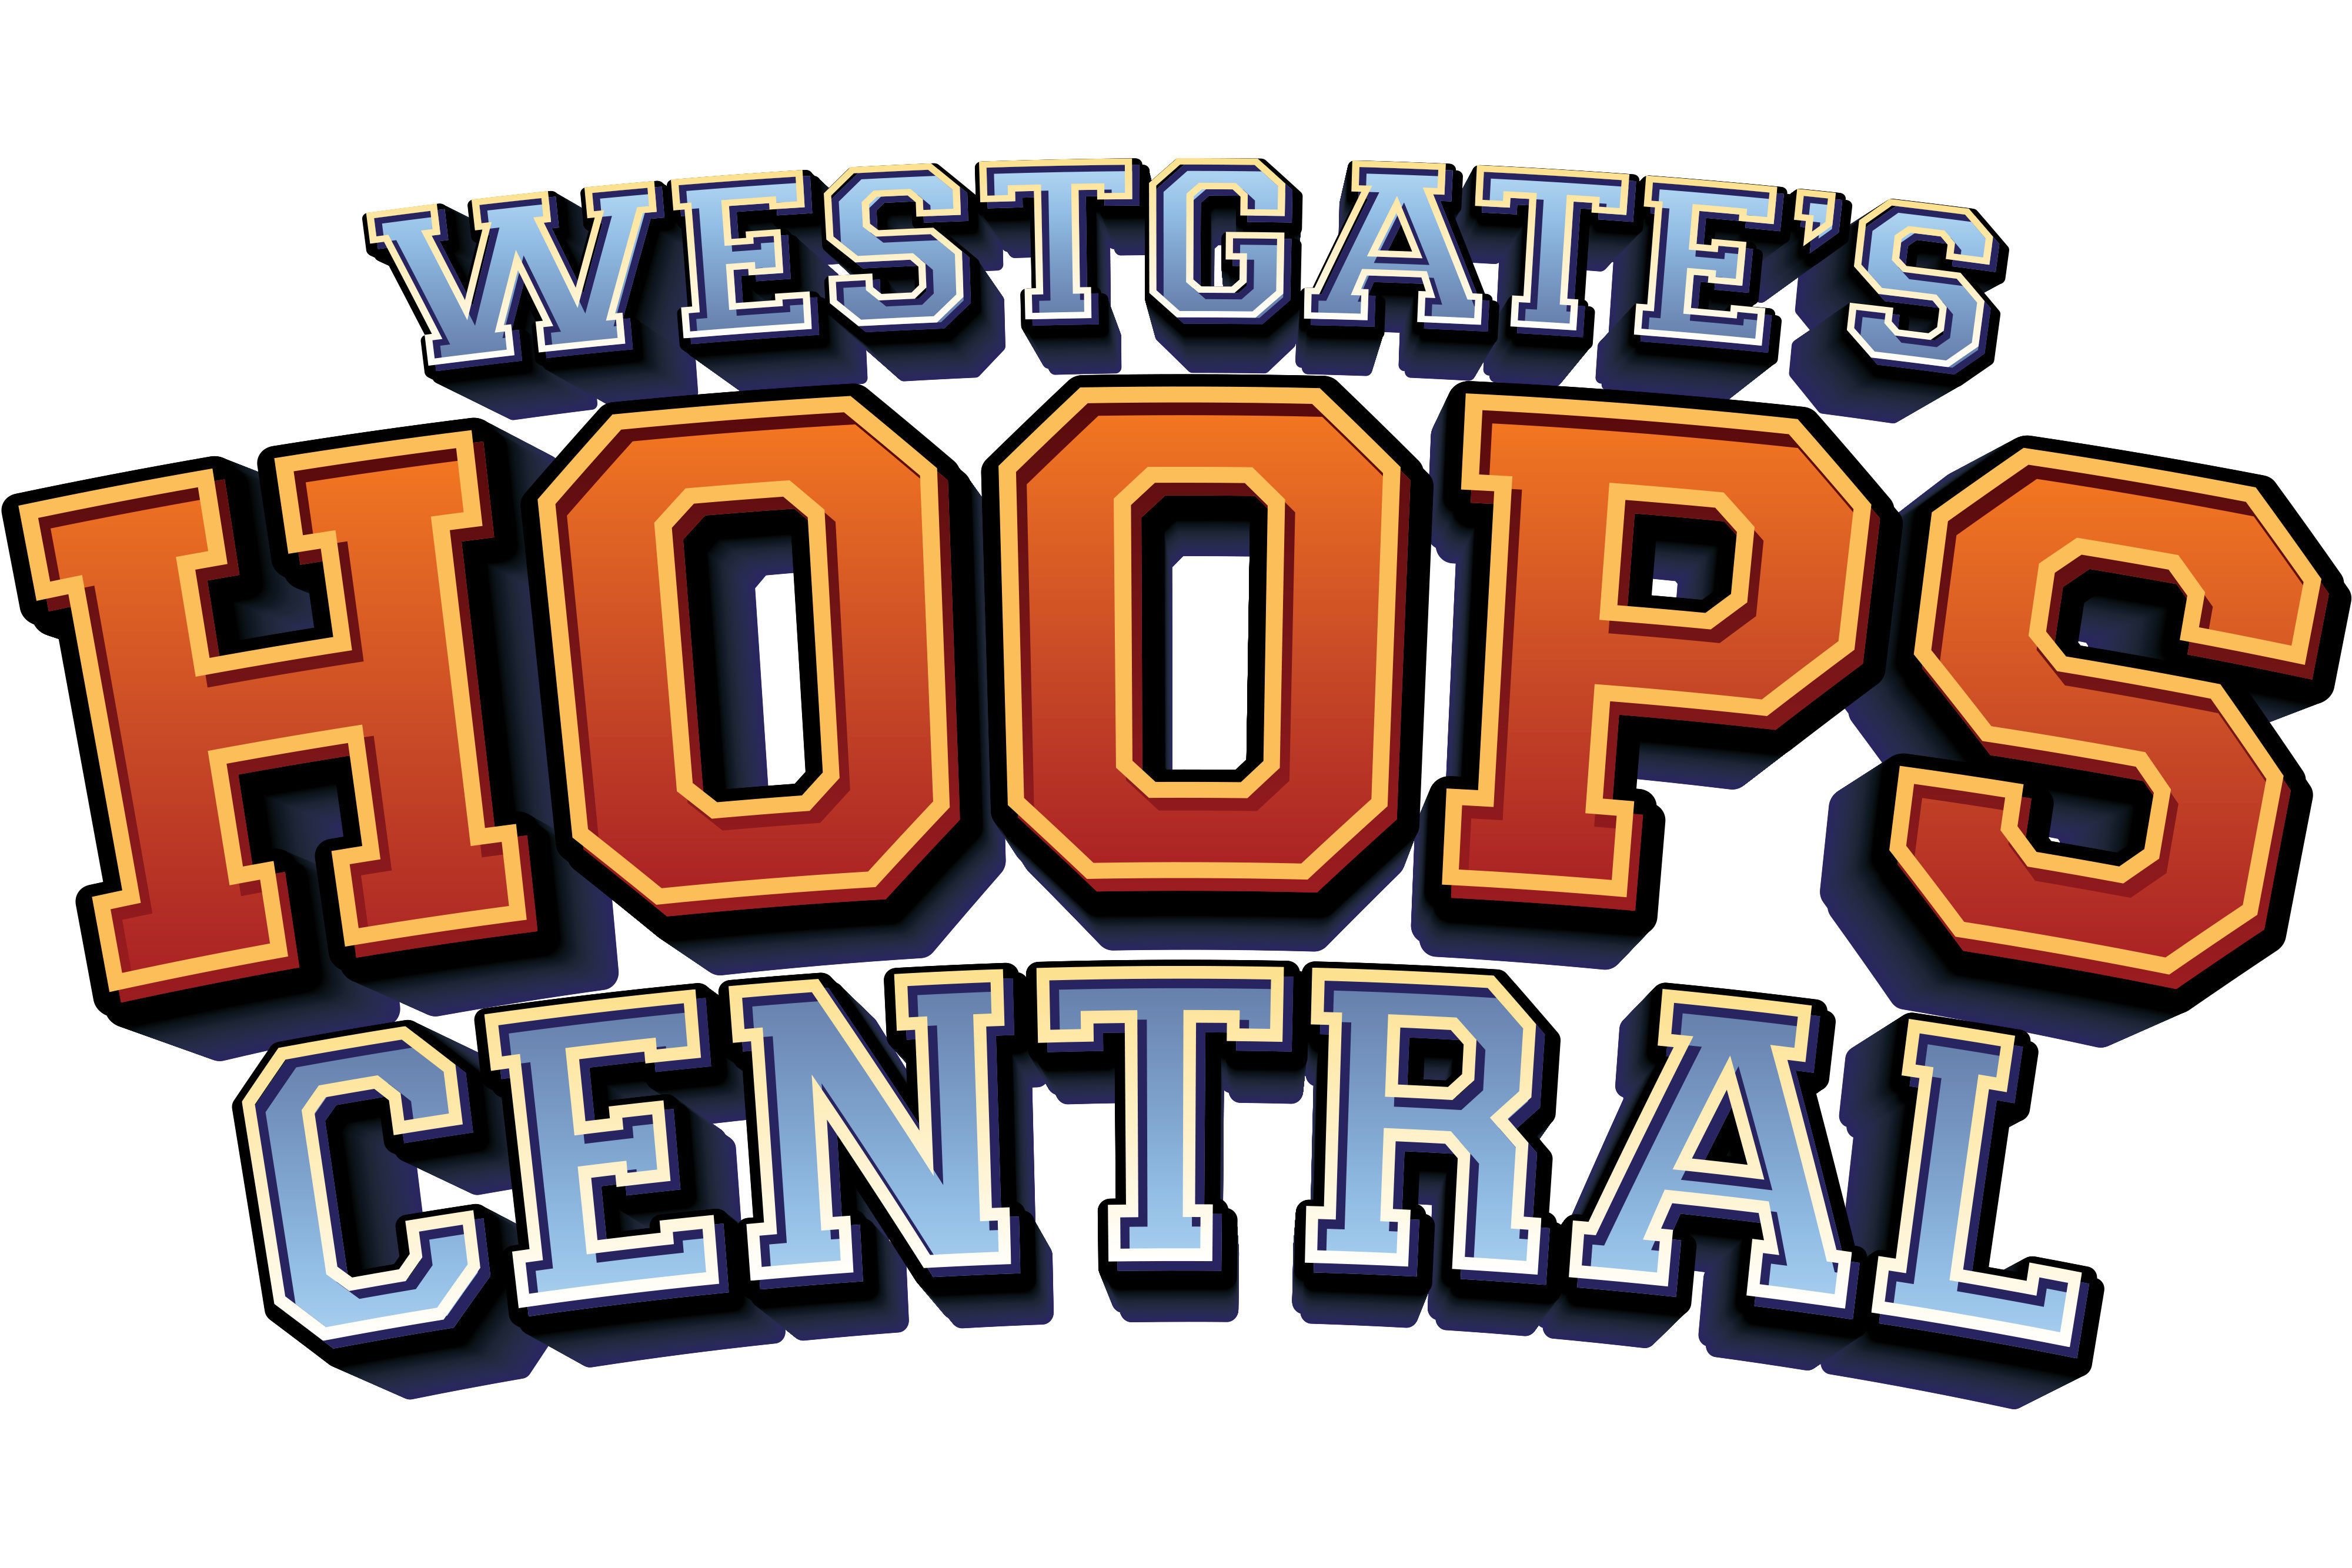 Westgate Hoops Central March Madness College Basketball | Westgate Las Vegas Resort & Casino | Westgate Resorts